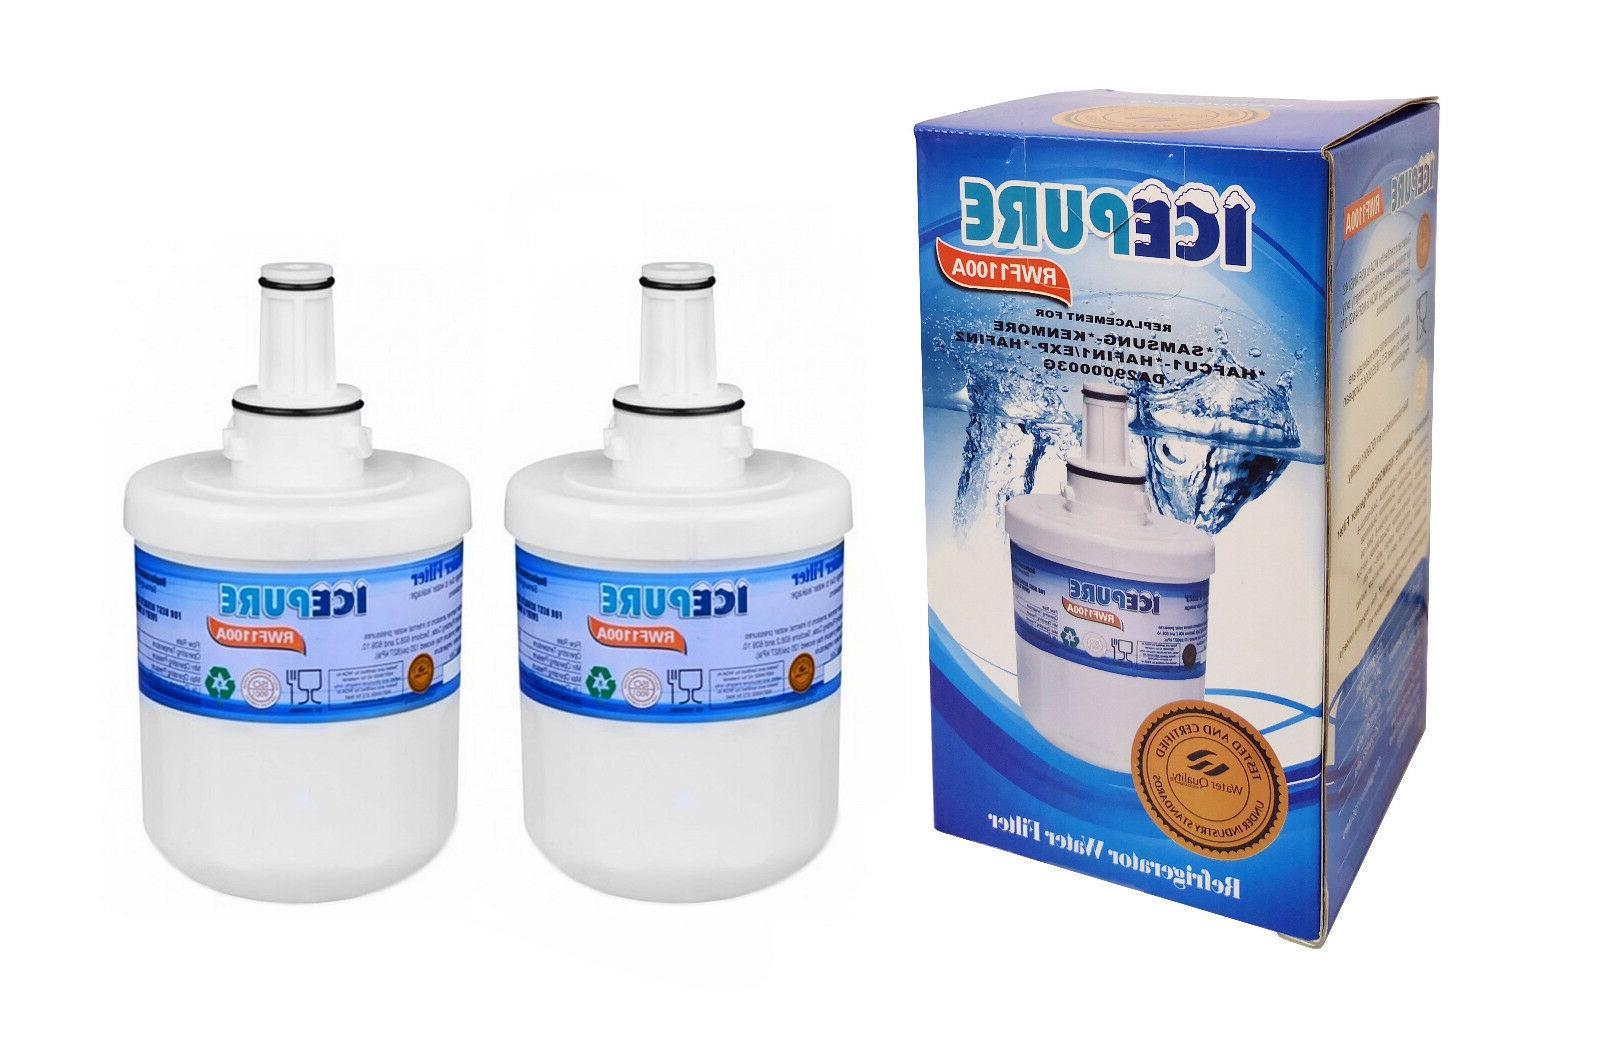 NEW GOLDEN ICEPURE REPLACEMENT WATER FILTER RWF1100A